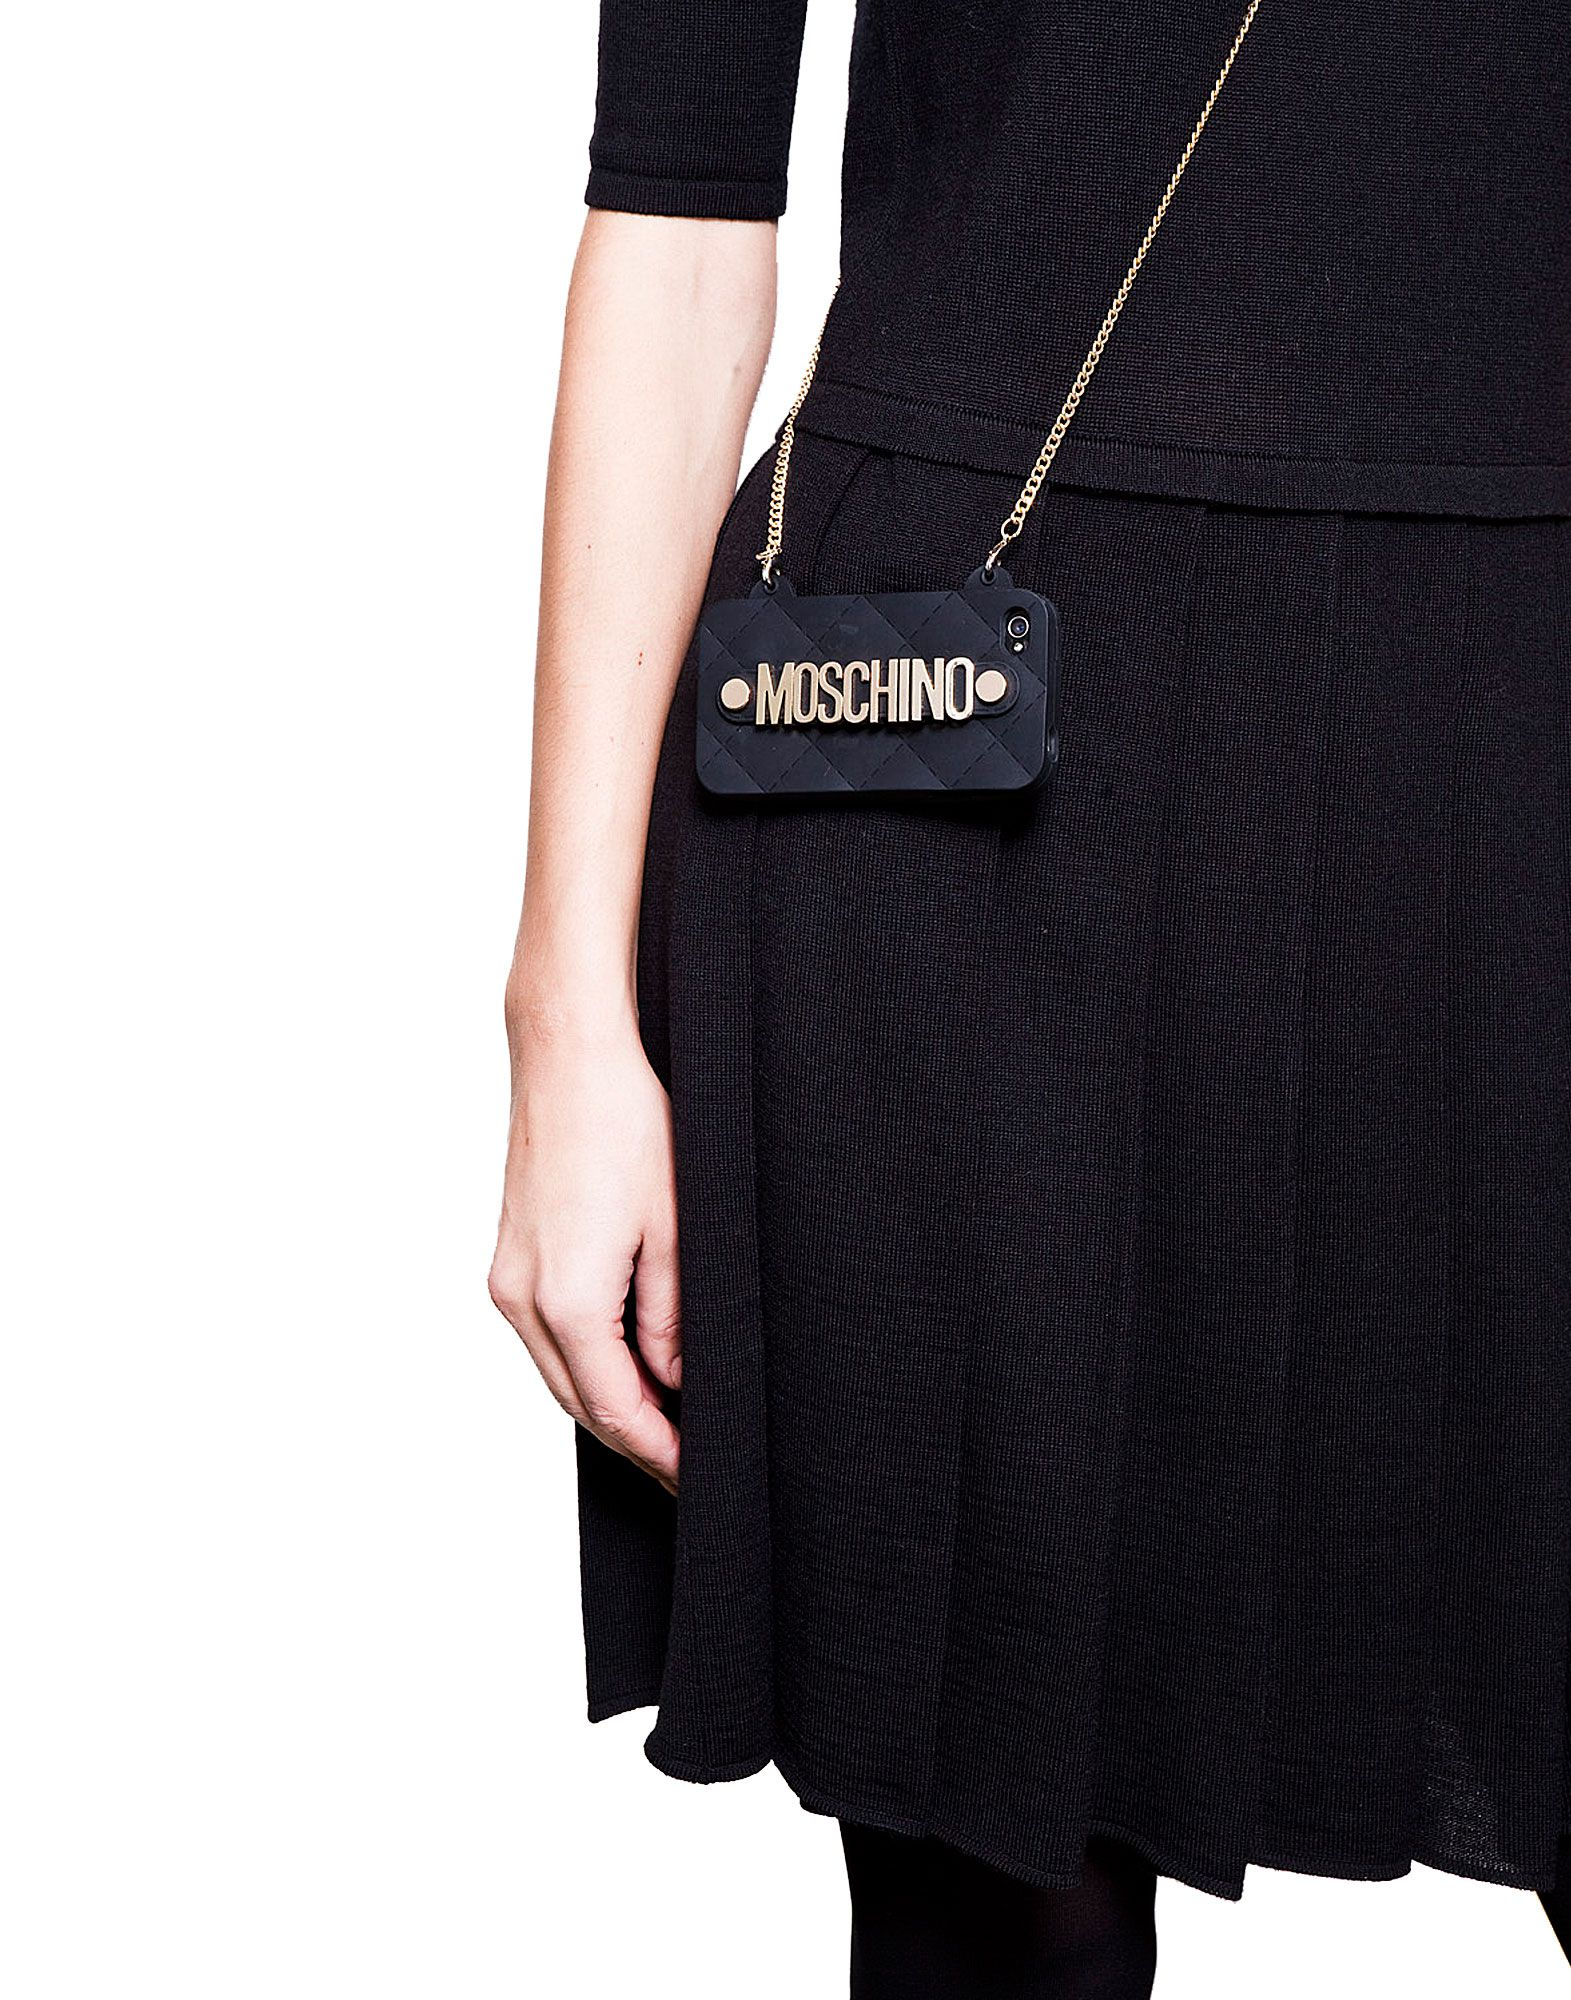 IPhone 4 Women - Moschino Online Store